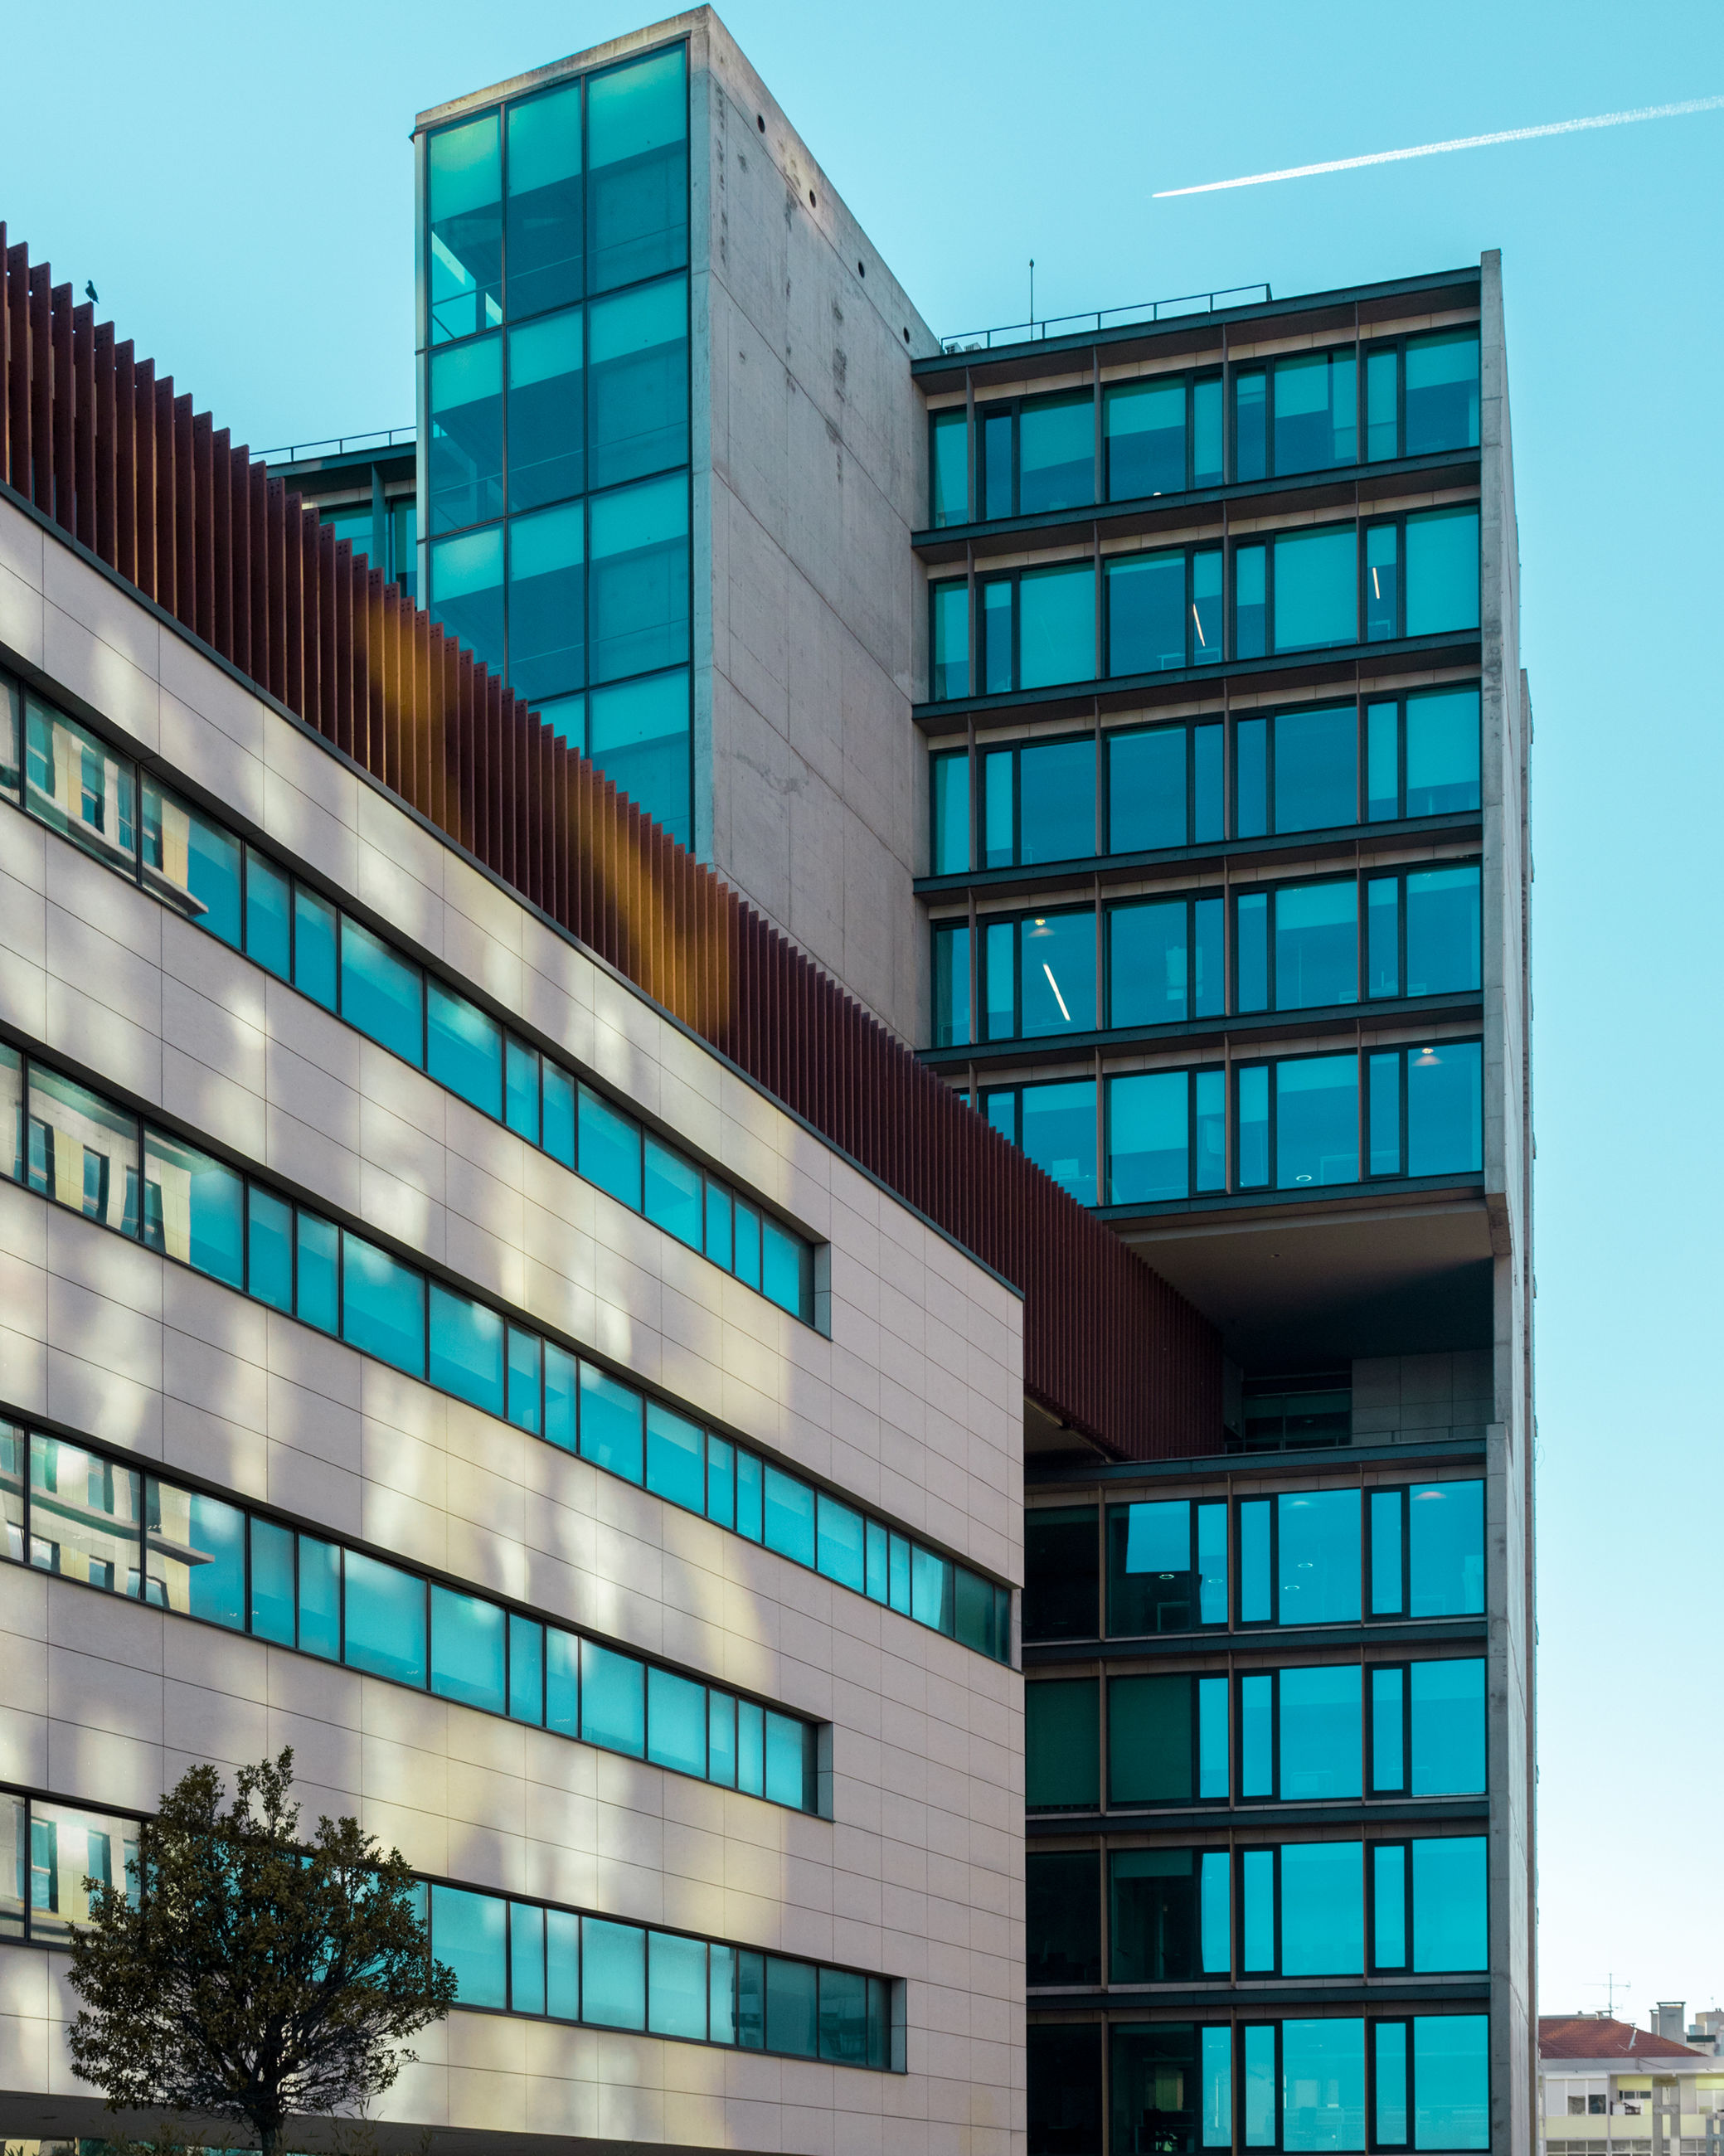 architecture, building exterior, built structure, office, modern, office building exterior, low angle view, building, city, glass - material, no people, sky, day, reflection, window, pattern, outdoors, nature, clear sky, business, skyscraper